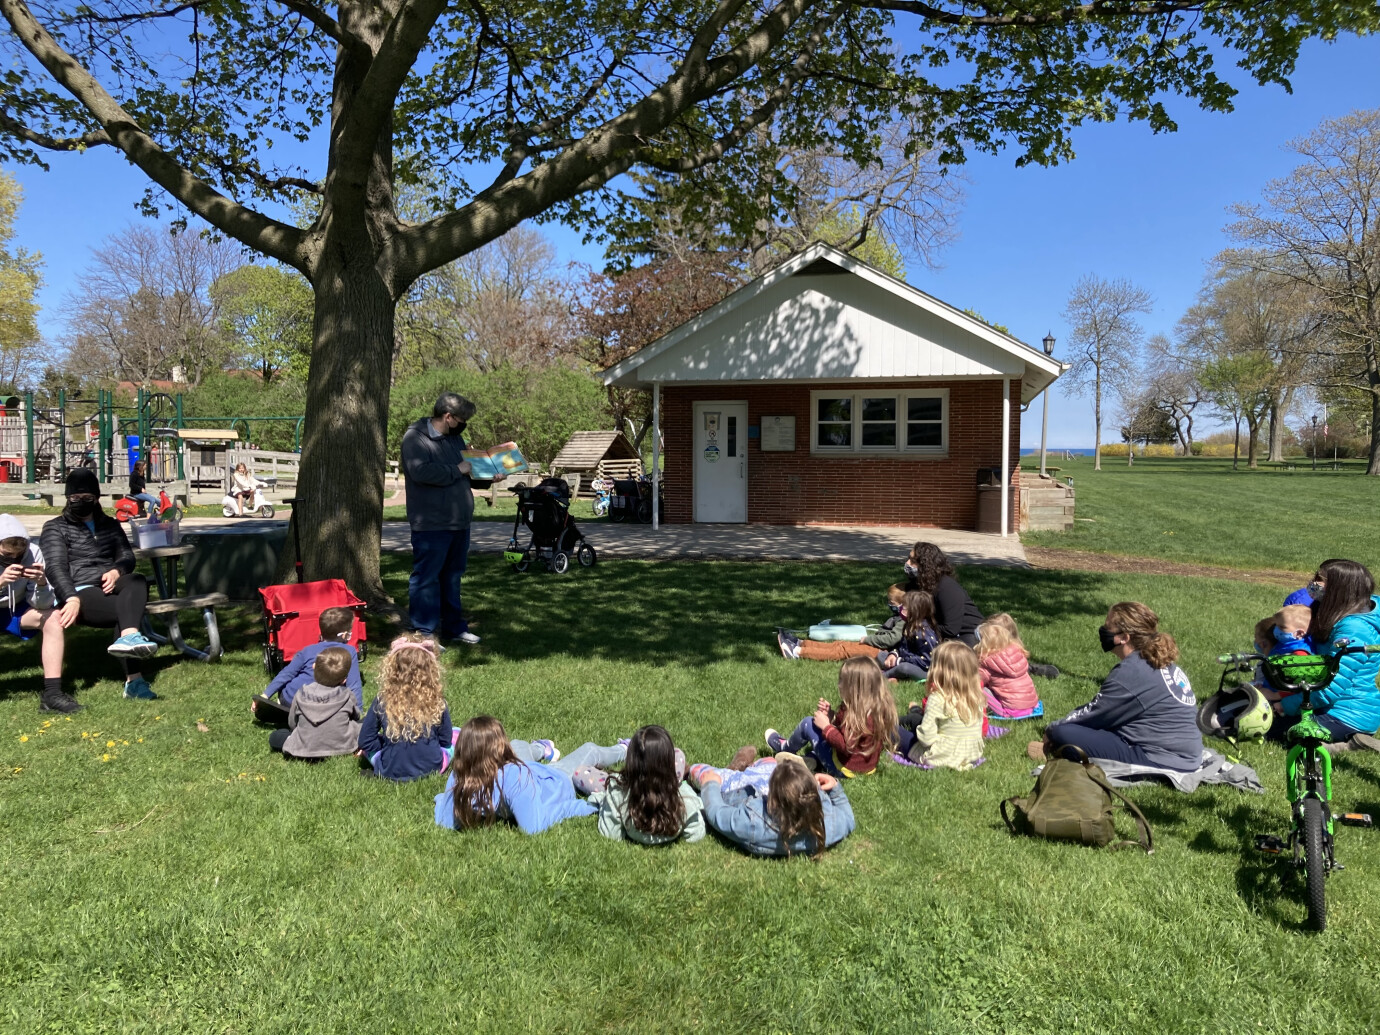 Sunday Worship in the Park